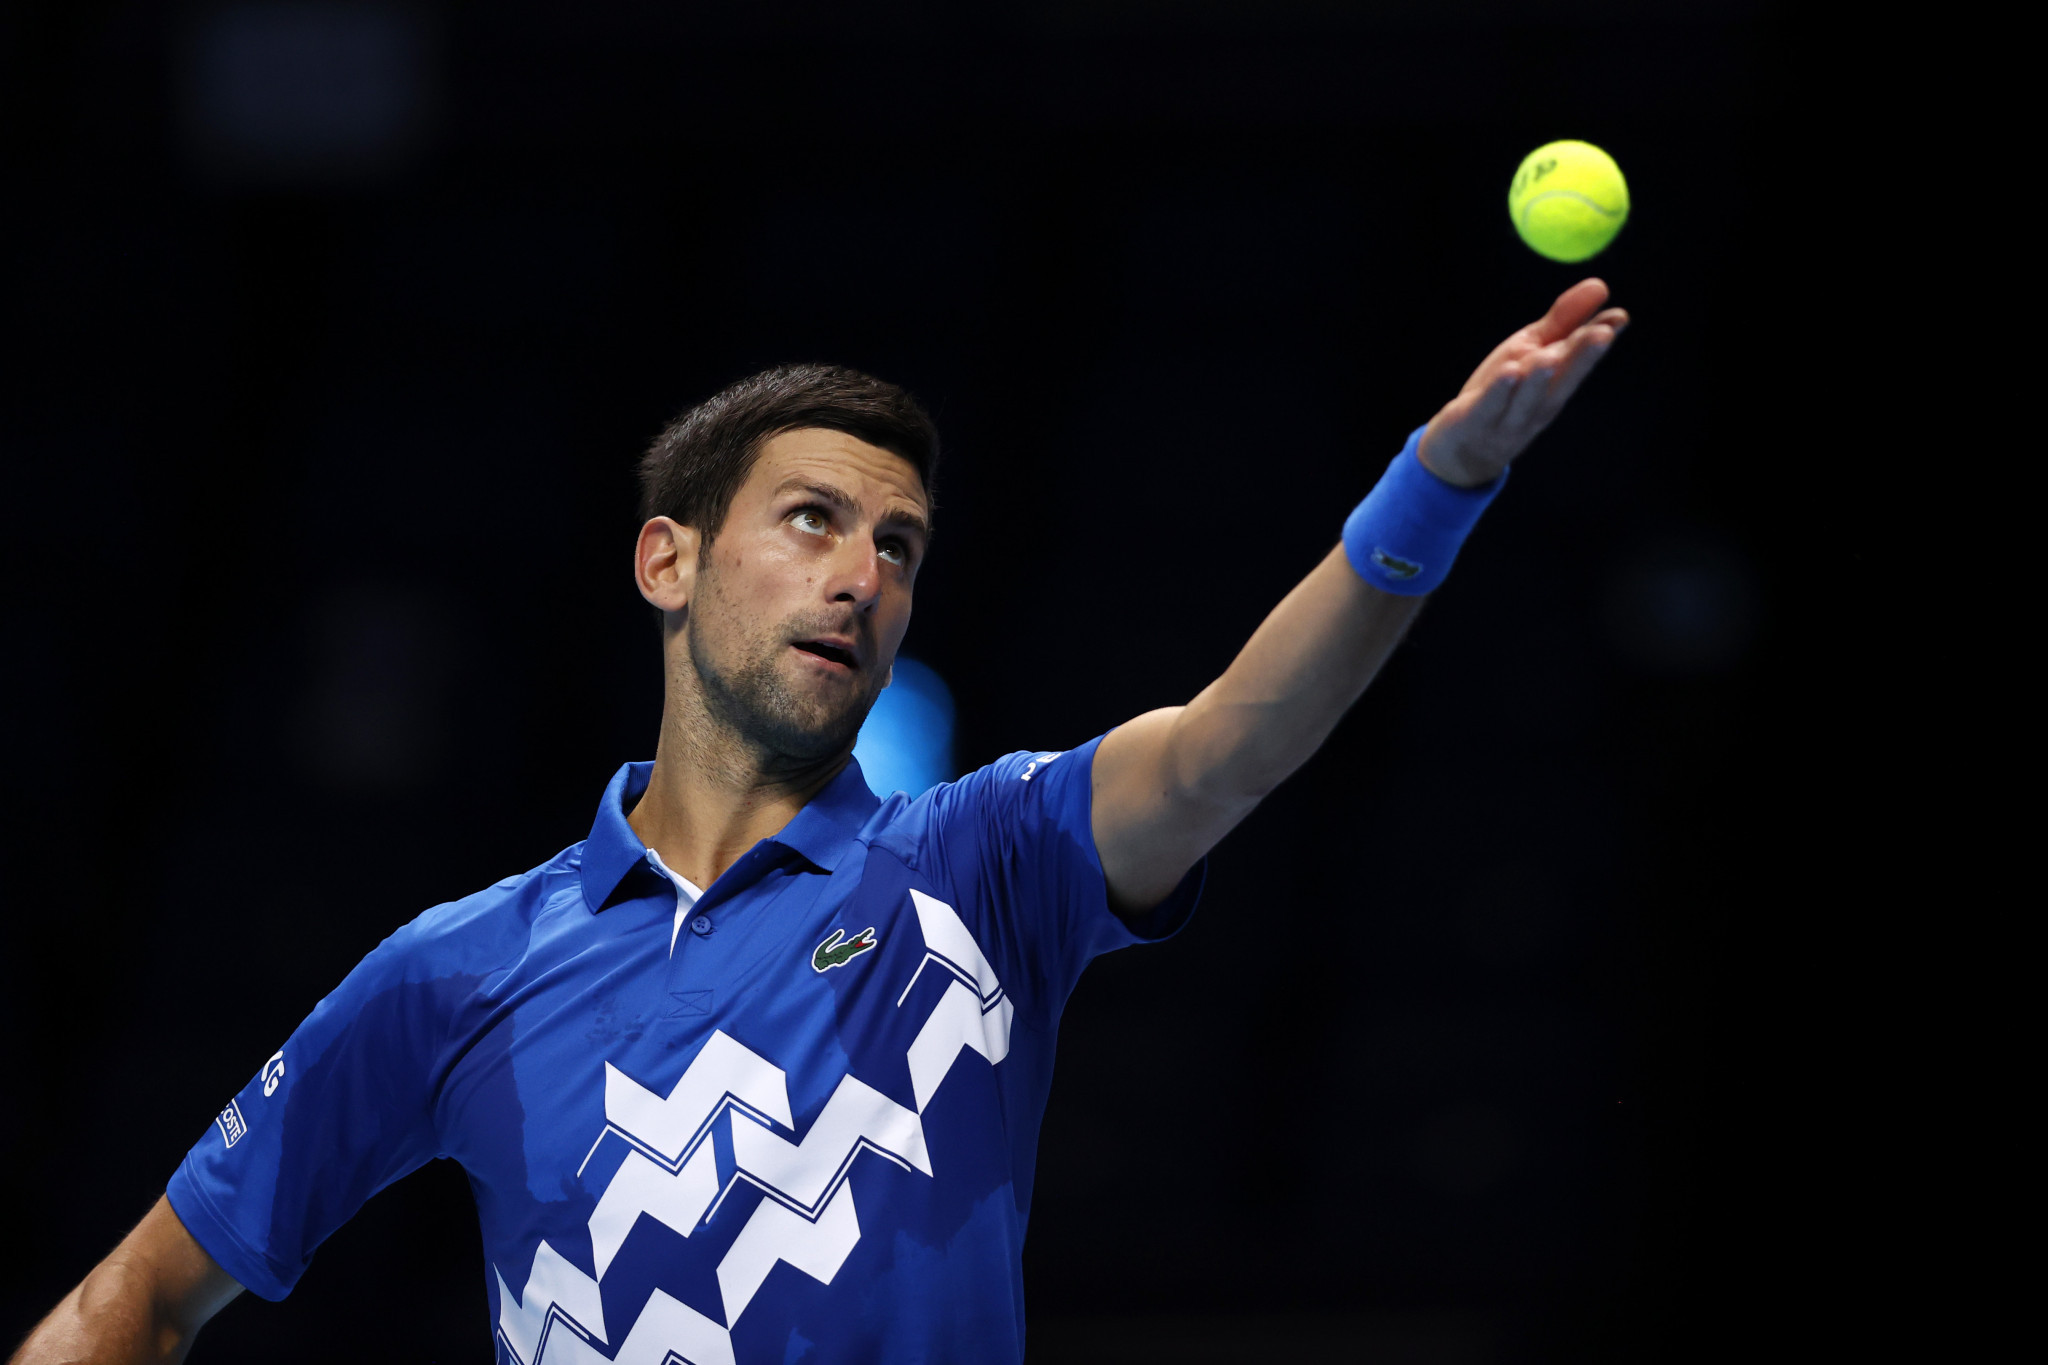 Novak Djokovic's wait for a sixth ATP Finals title goes on- he was last victorious in 2015